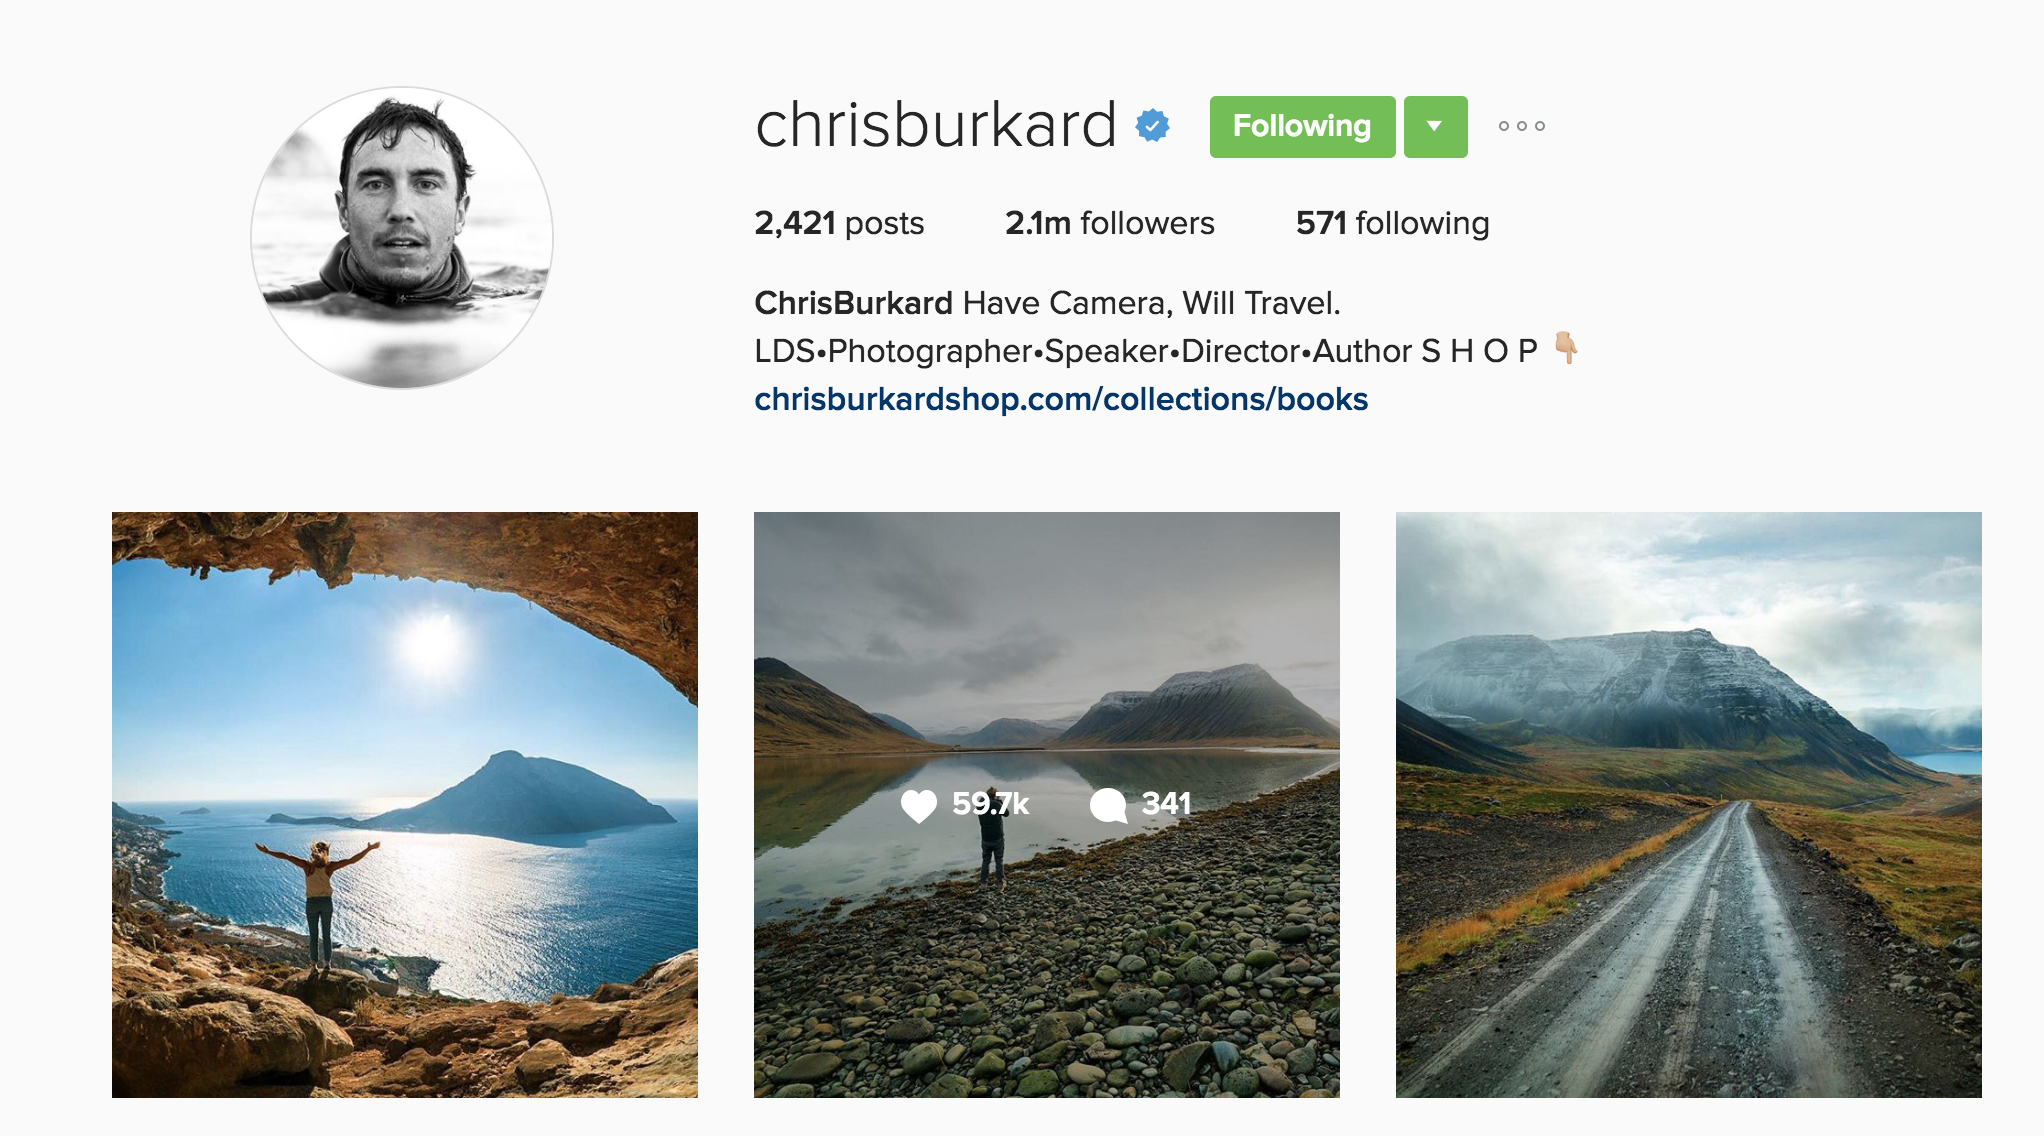 Screenshot from @chrisburkard's Instagram account with over 2 million followers and counting